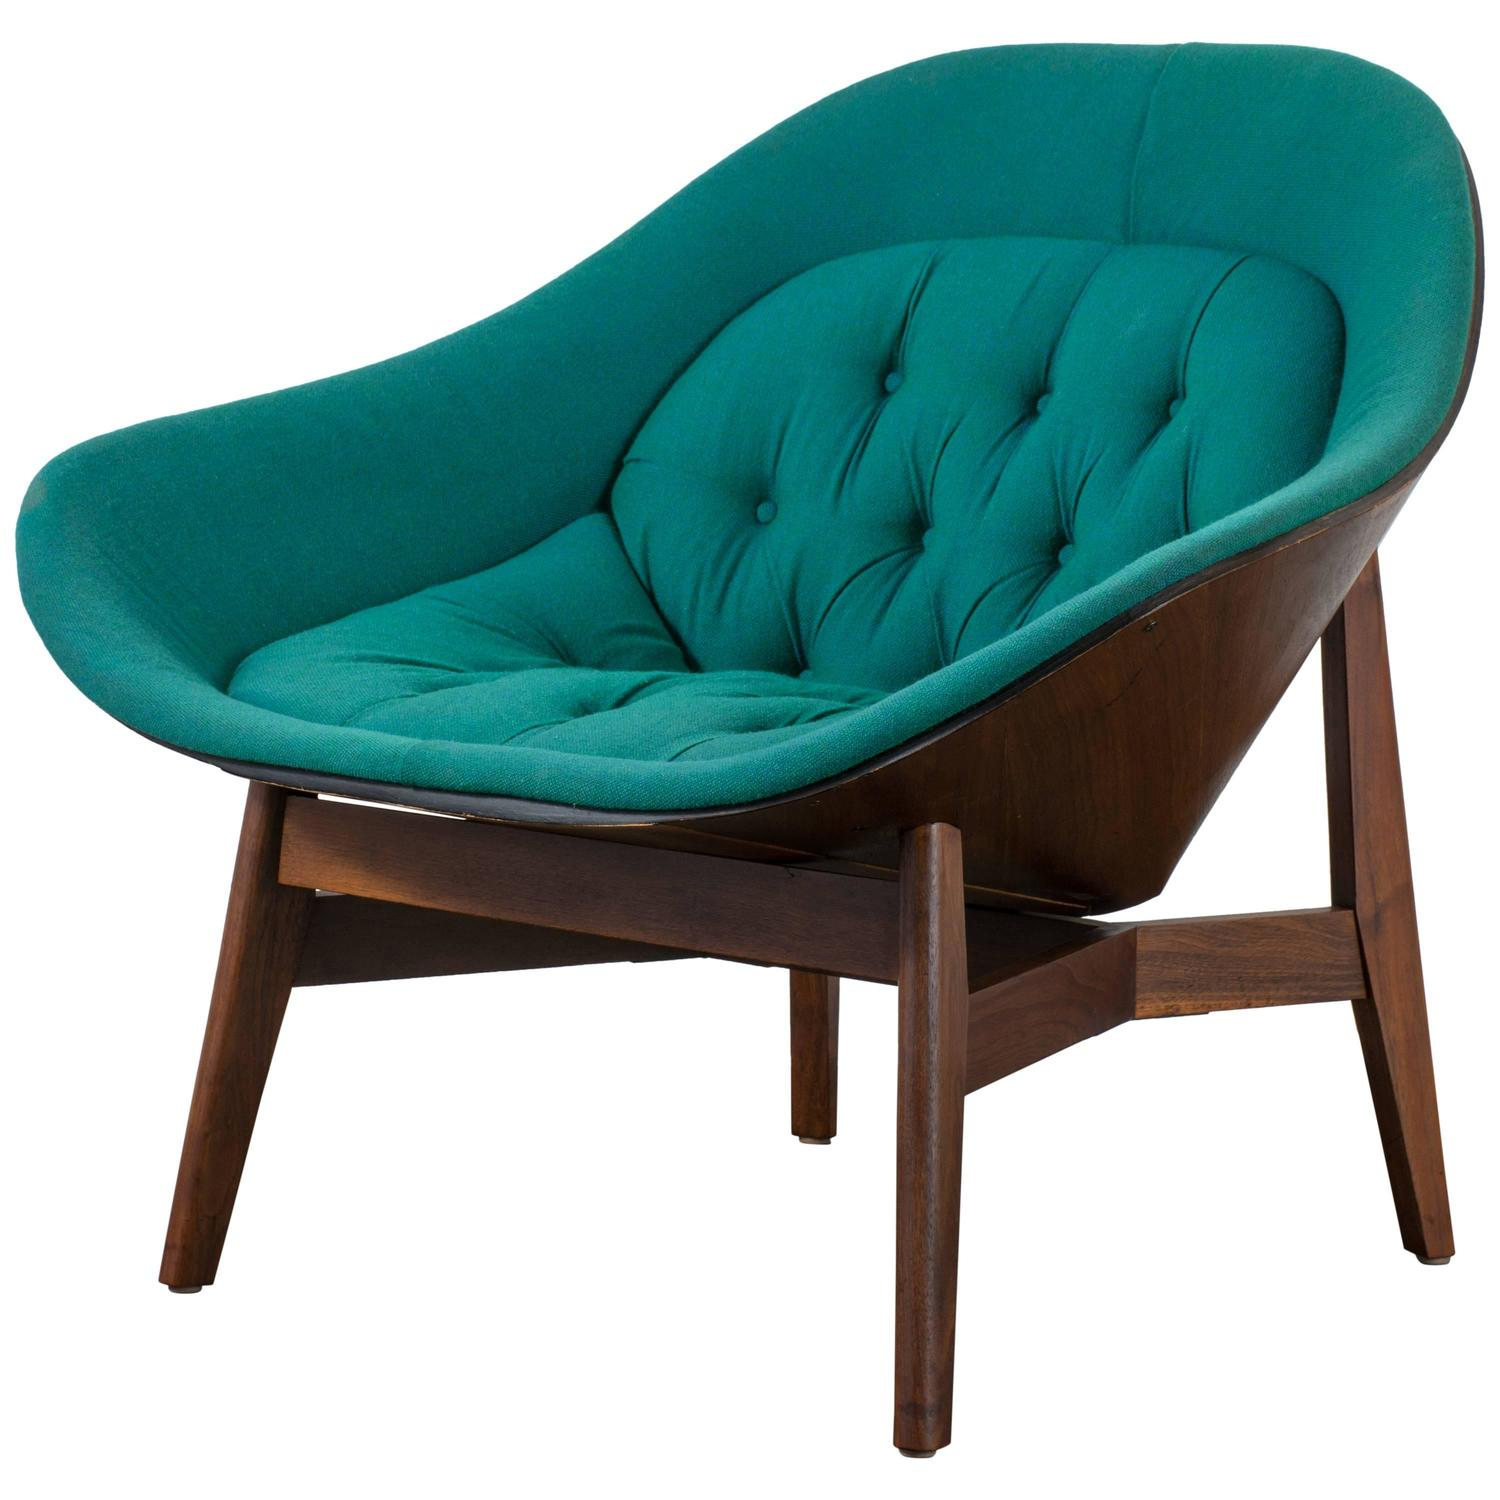 Mid Century Modern Lounge Chair by George Mulhauser for Plycraft at 1stdibs